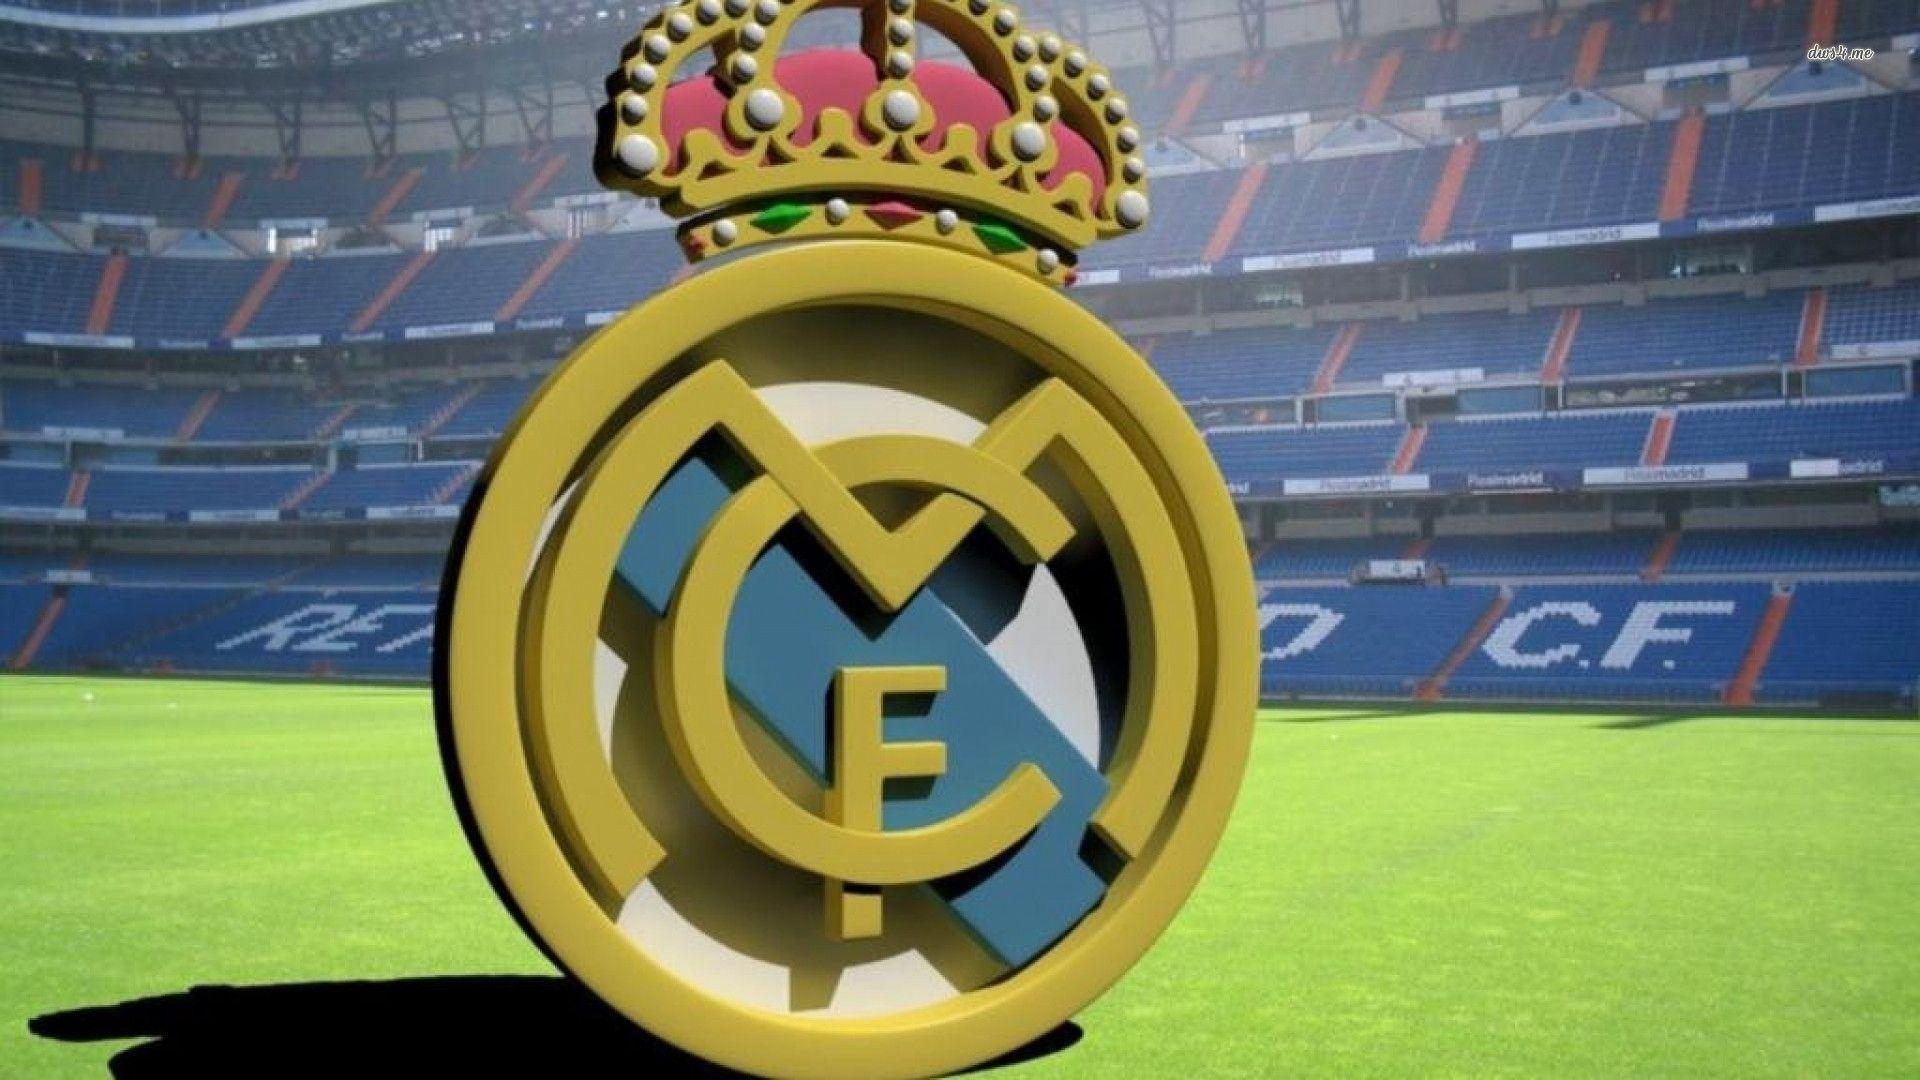 Real Madrid Logo Wallpaper HD 2016 | Wallpapers, Backgrounds ...